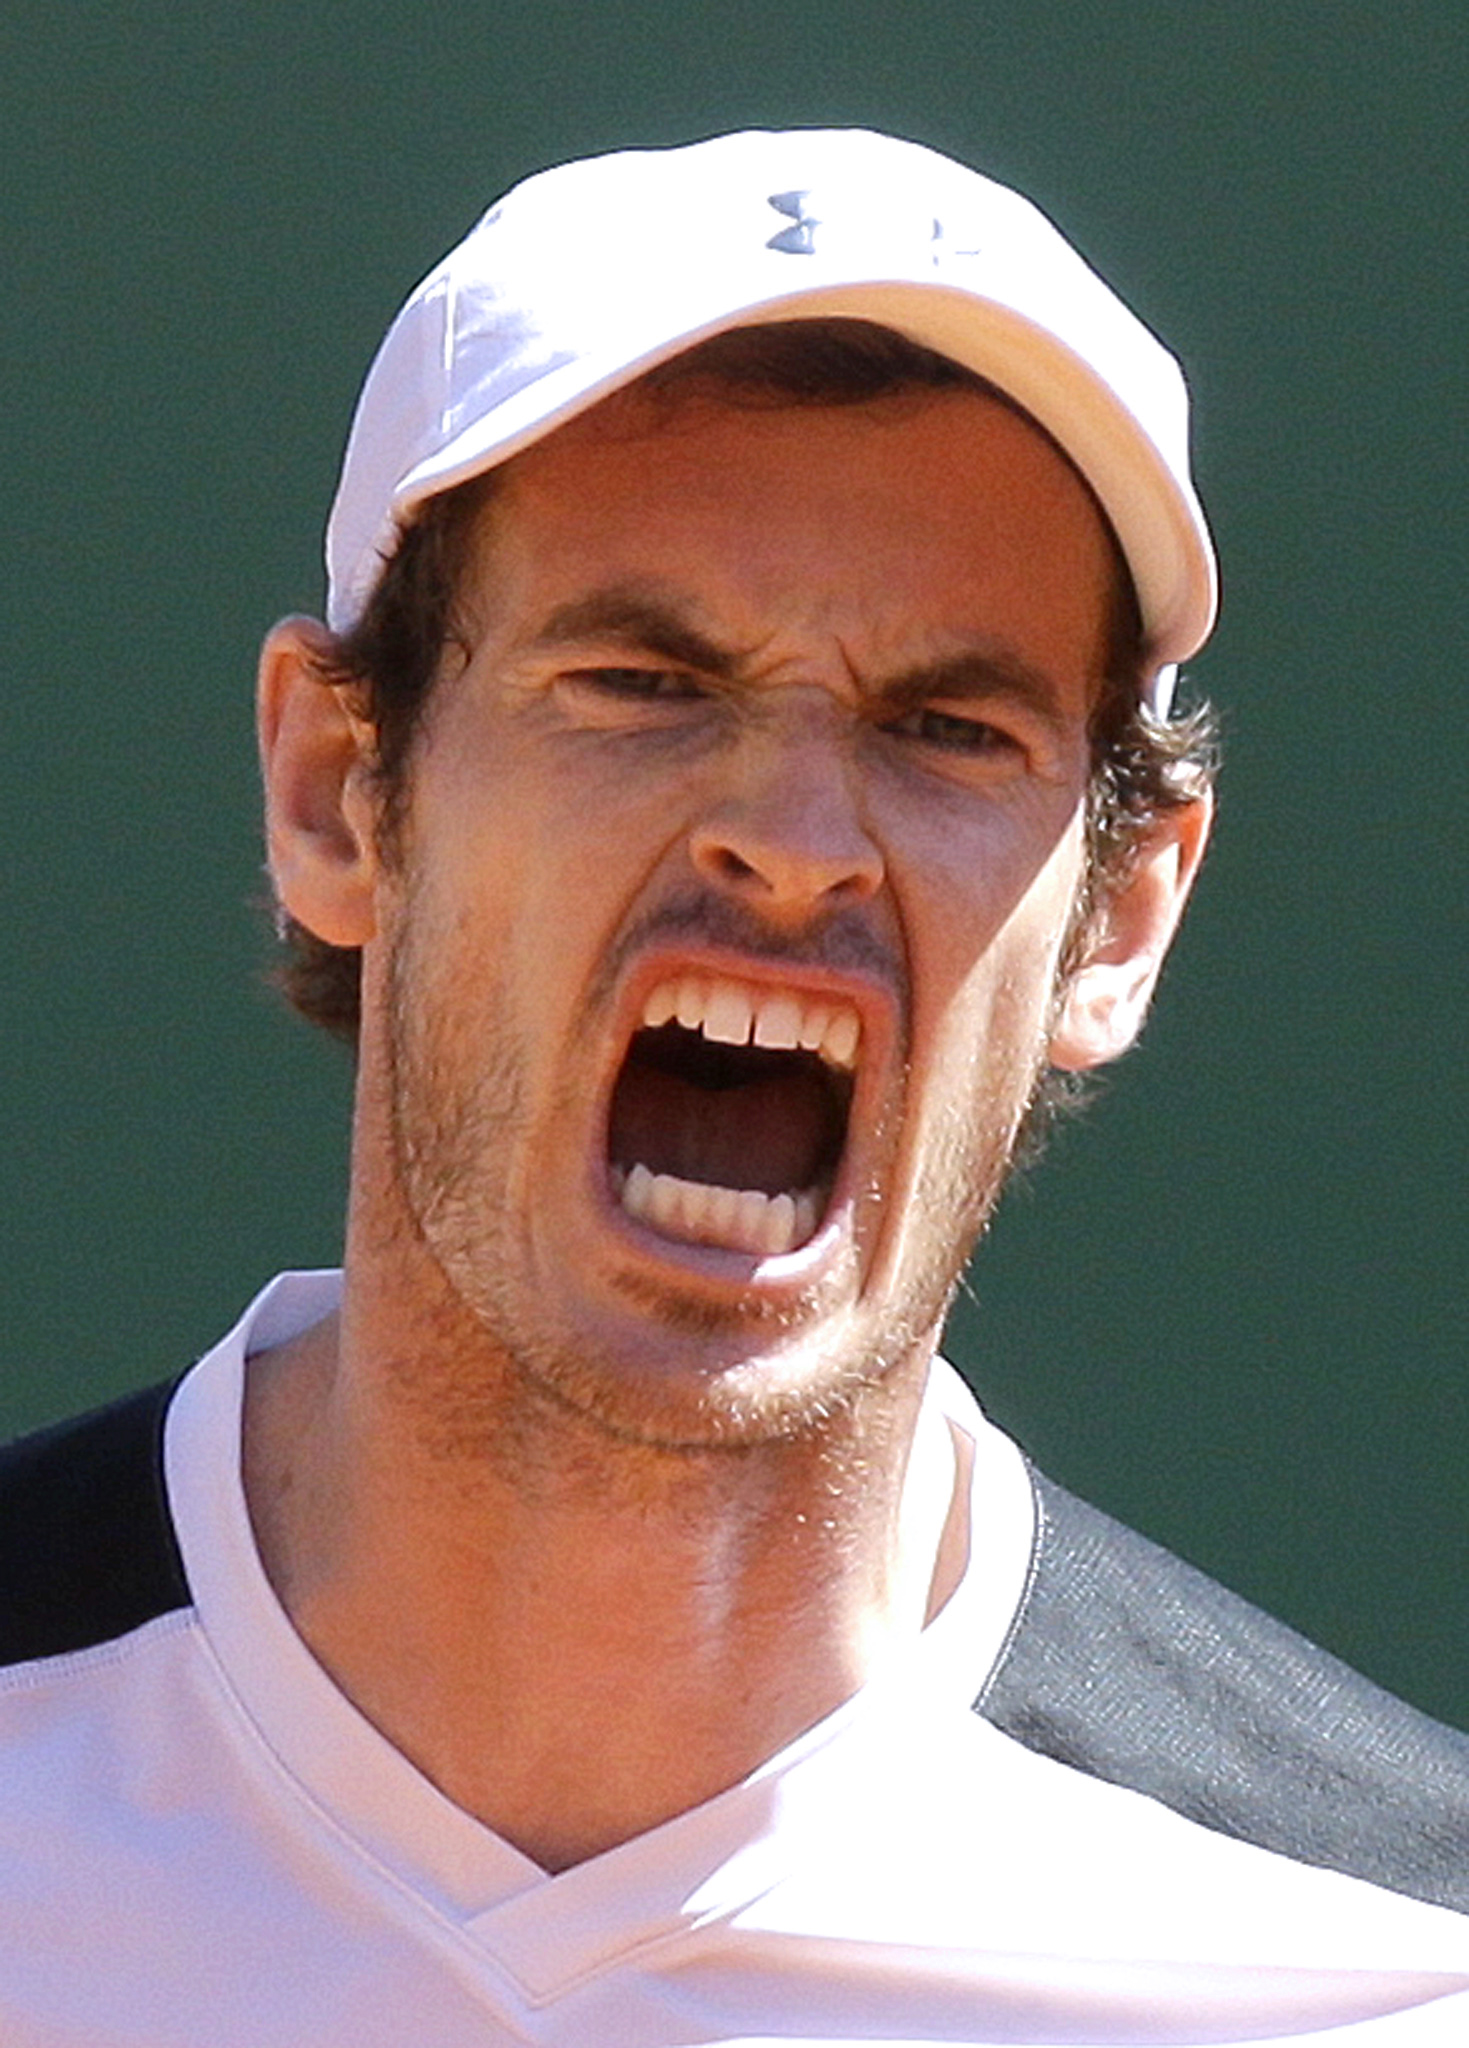 Andy Murray of Britain reacts during his match of the Monte Carlo Tennis Masters tournament against France's Benoit Paire in Monaco, Thursday, April 14, 2016. (AP Photo/Lionel Cironneau)